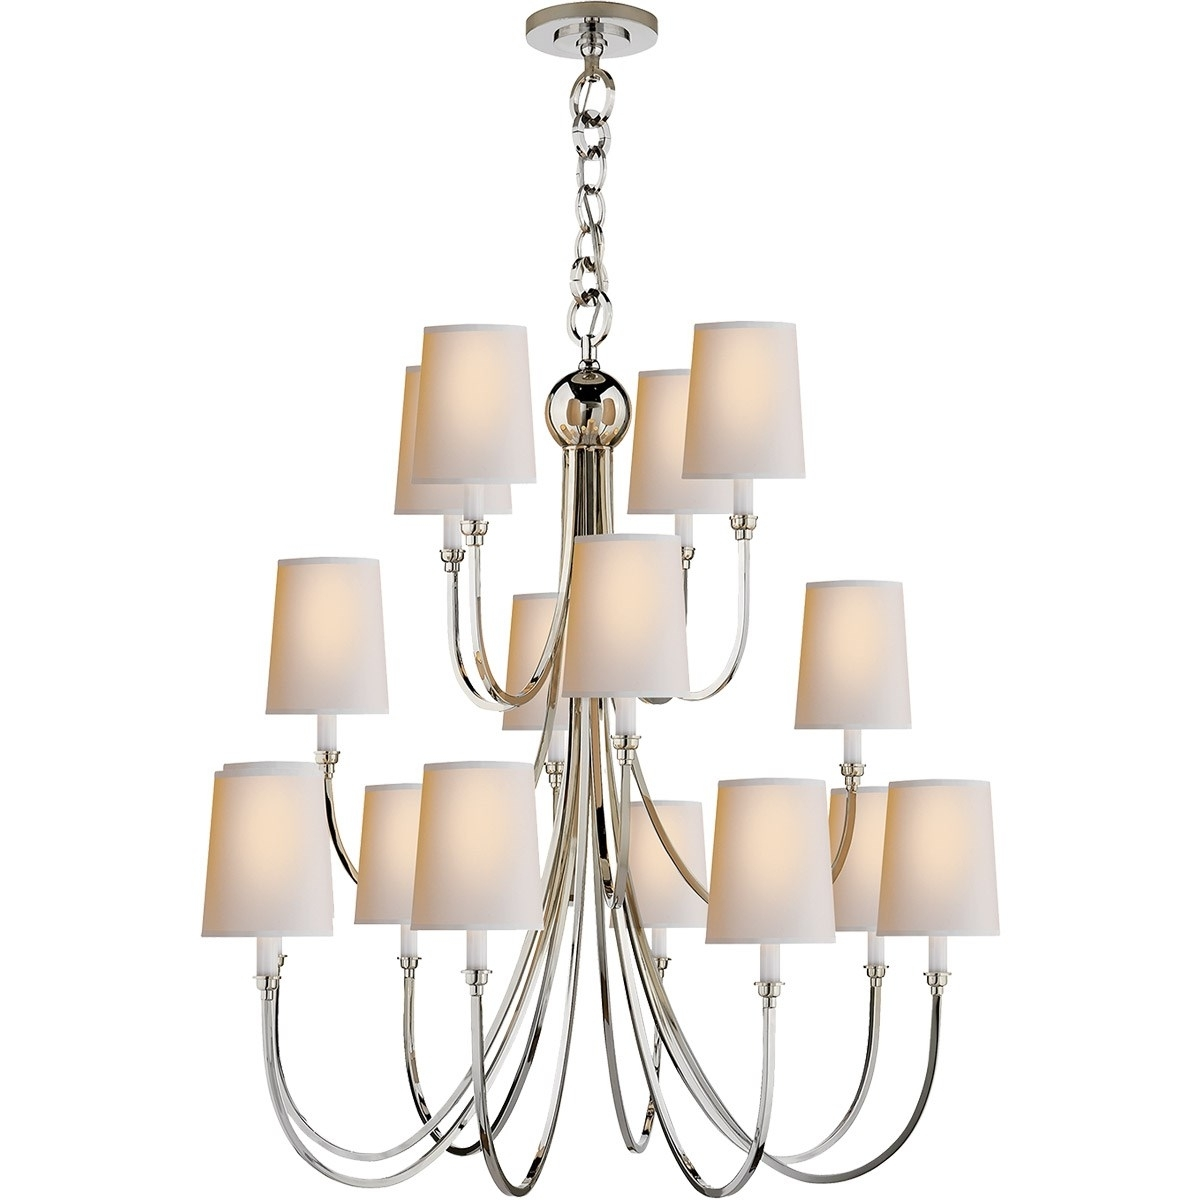 Newest Extra Large Chandelier Lighting Pertaining To Visual Comfort Tob5019 Reed 16 Light Extra Large Chandelier With (View 5 of 15)